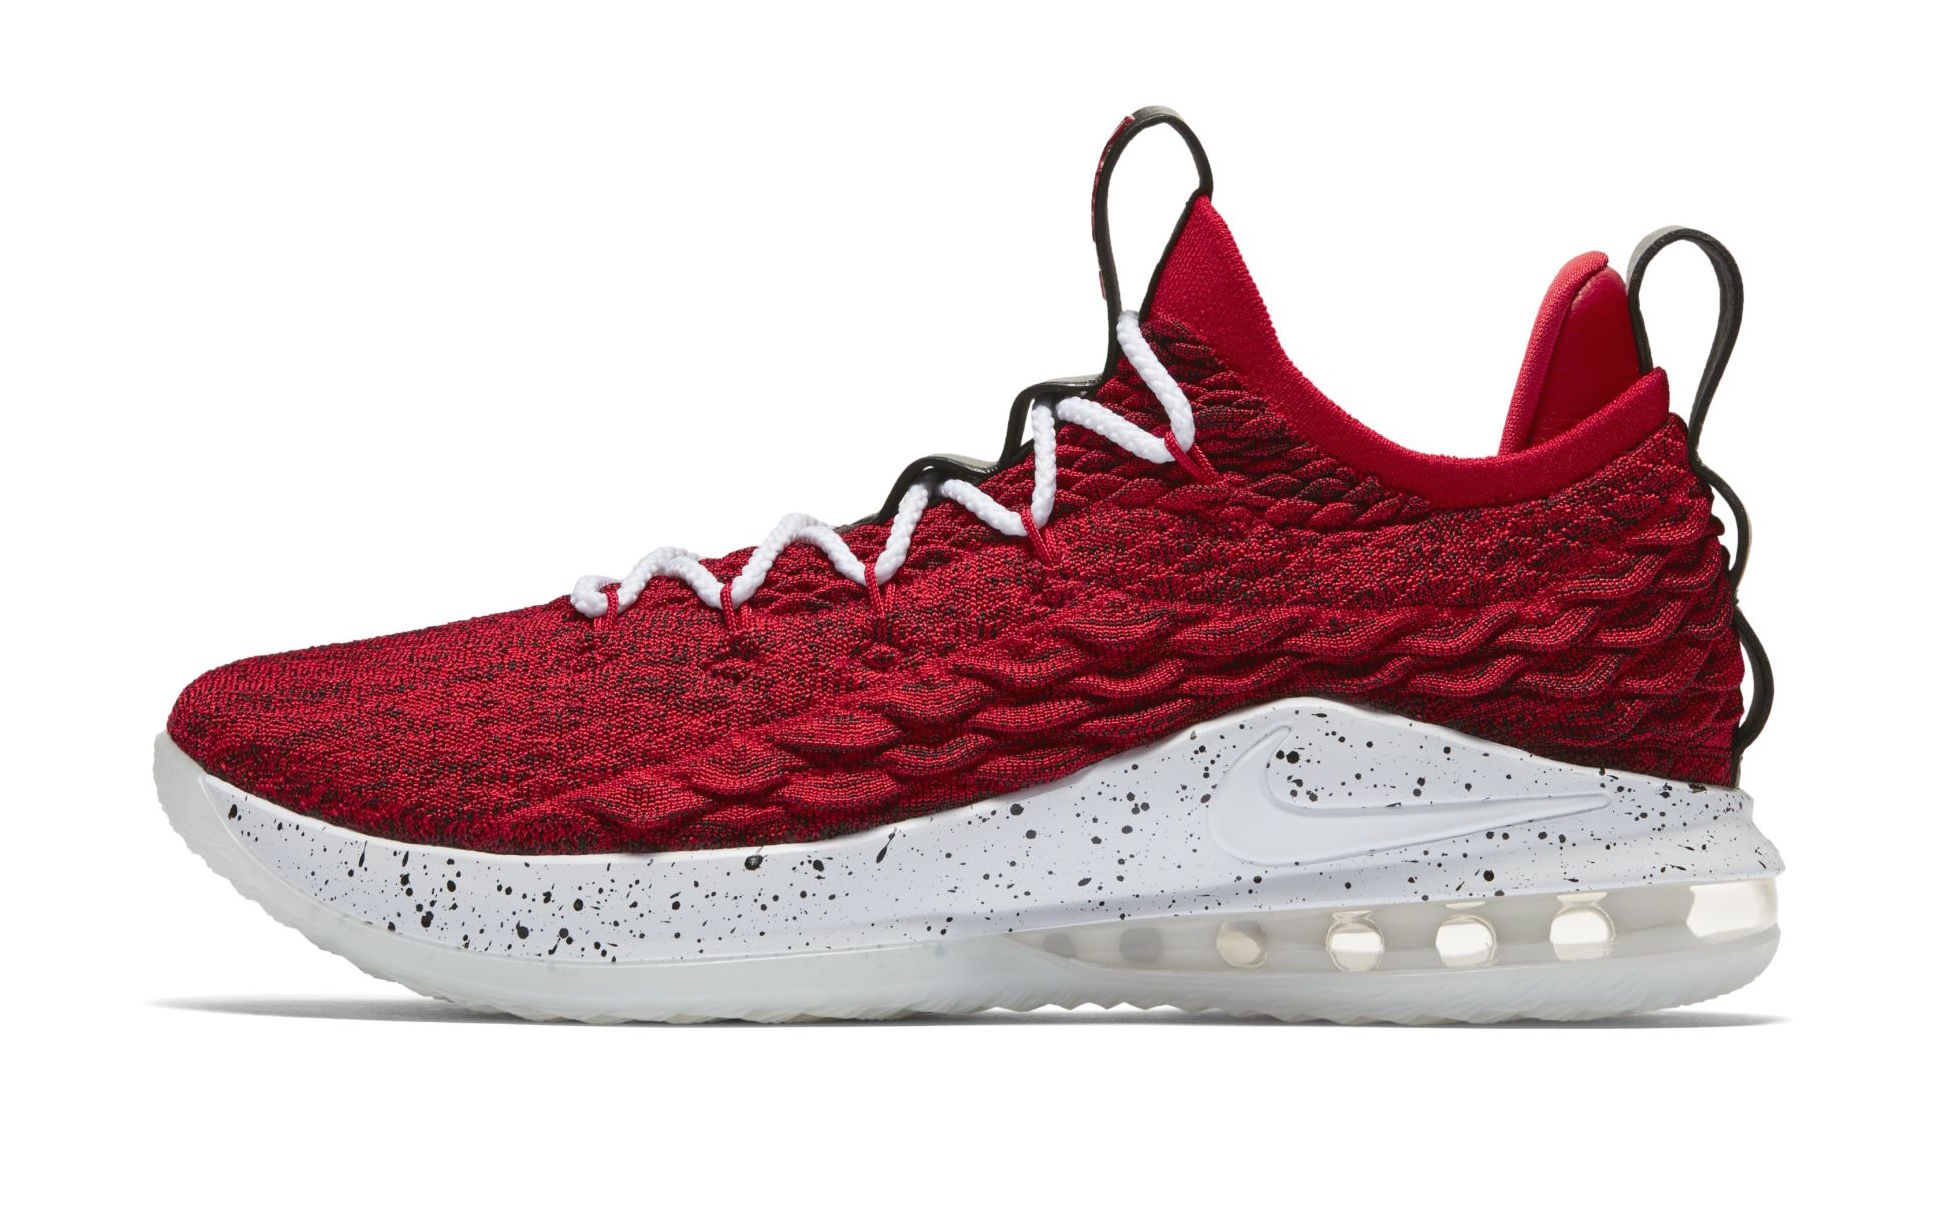 outlet store a51aa f7856 Official Images: Nike LeBron 15 Low University Red ...